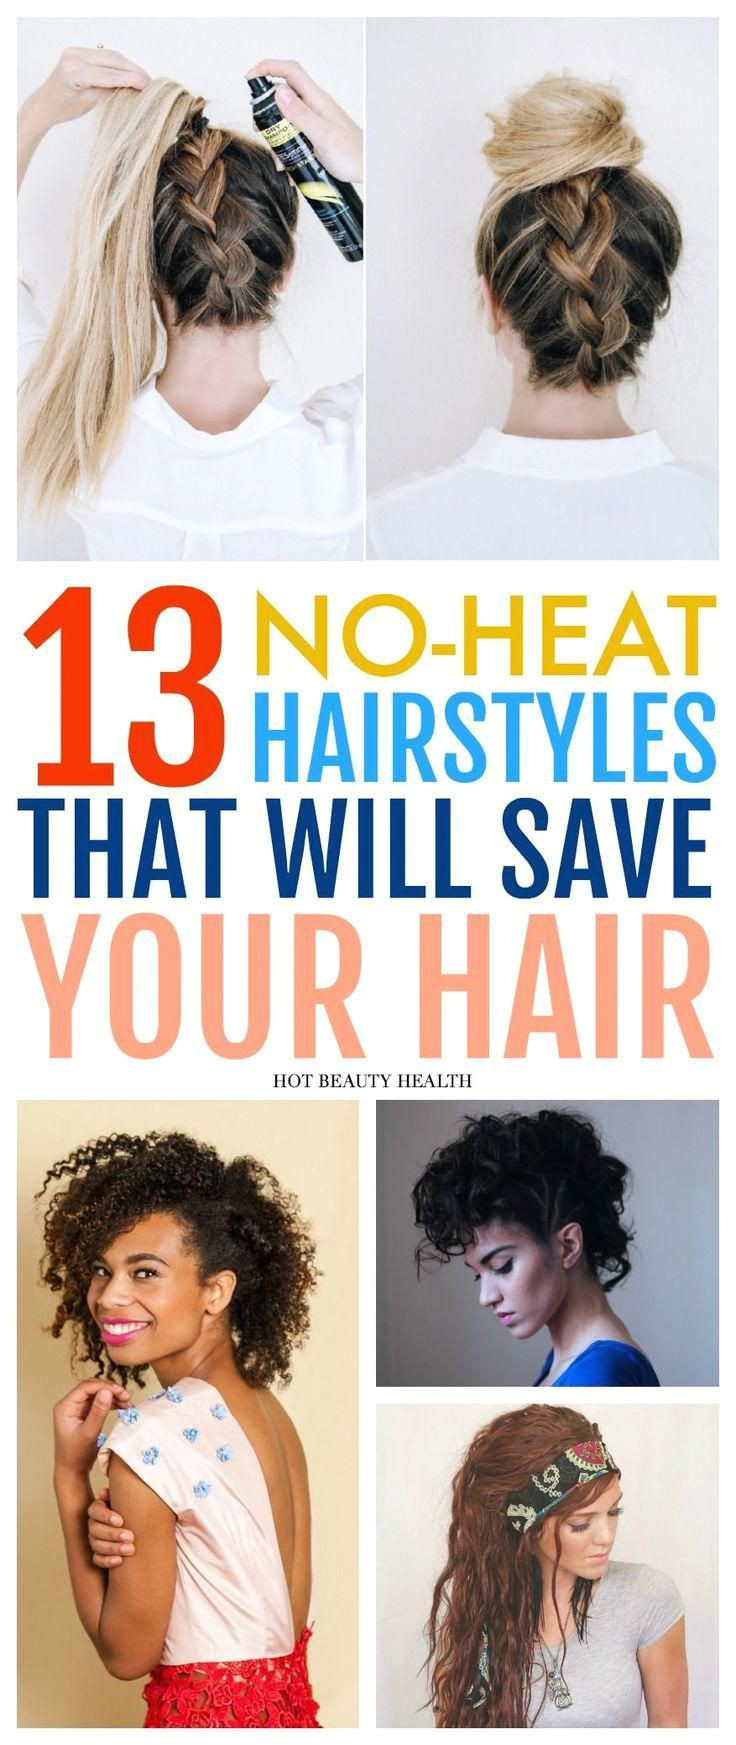 13 easy No Heat Hairstyles that will save your hair this spring and summer Find a style for long hair medium short braids natural curly styles great